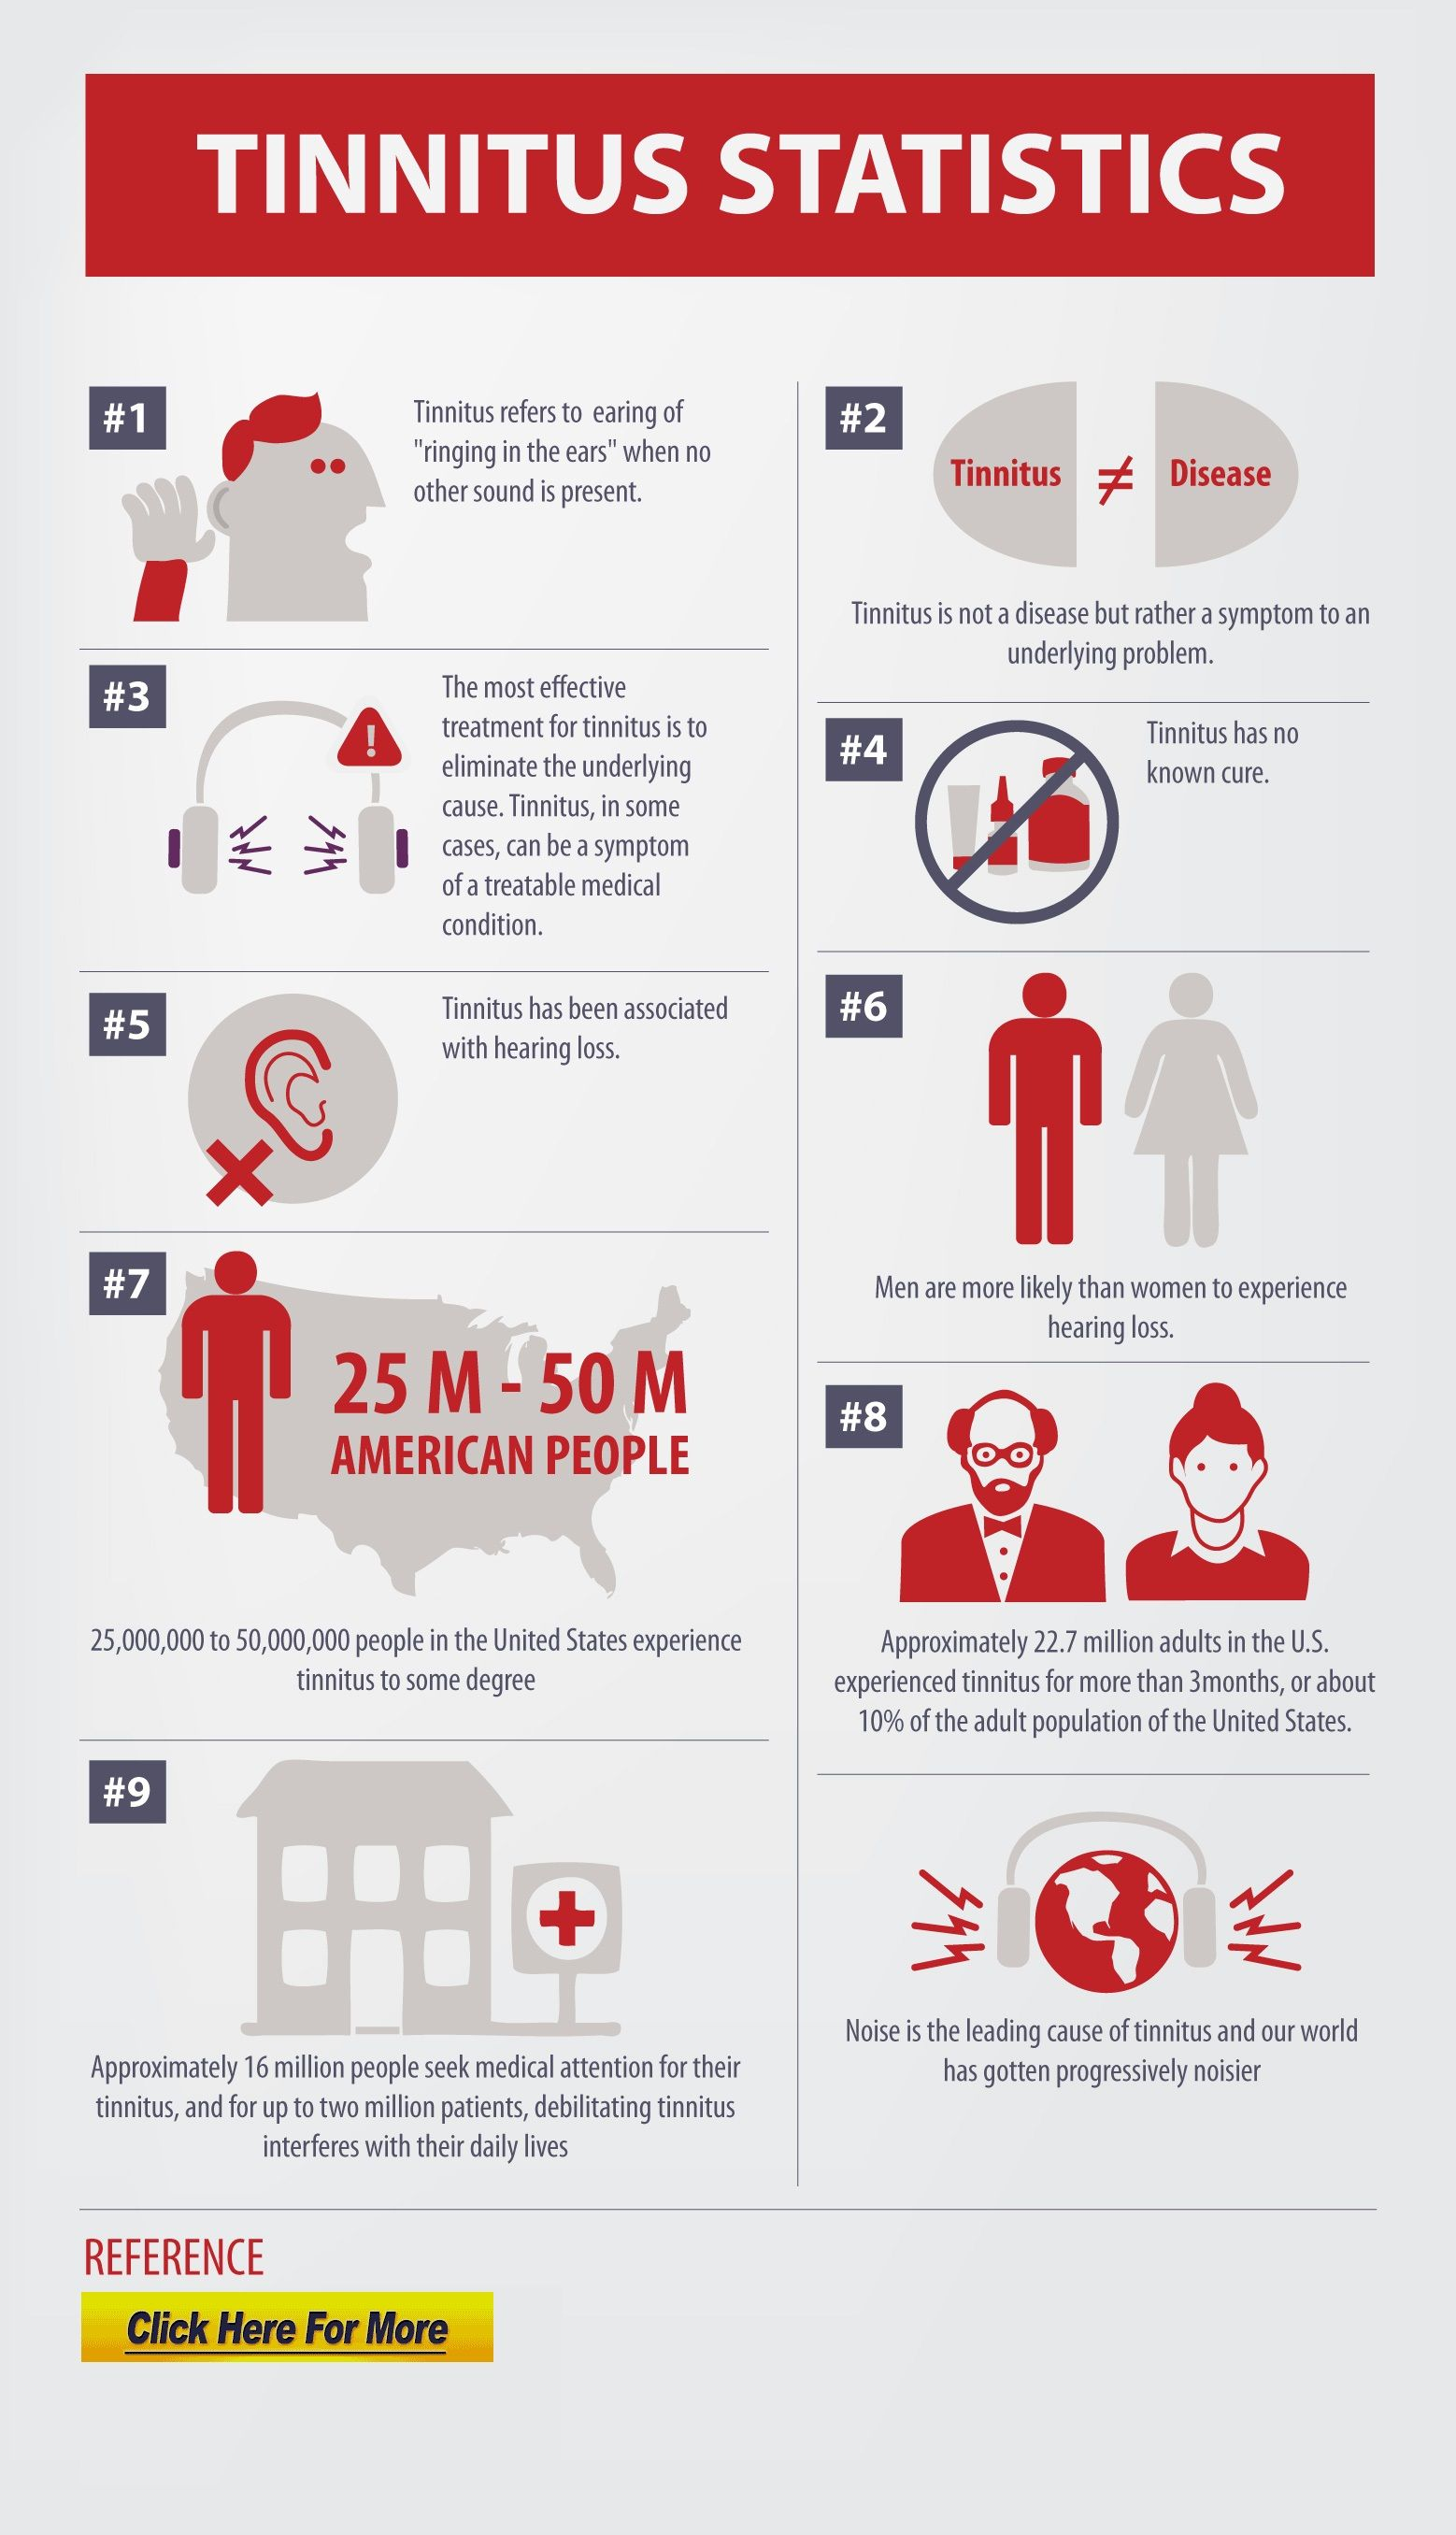 Tinnitus Statistics Learn More About Tinnitus To Better